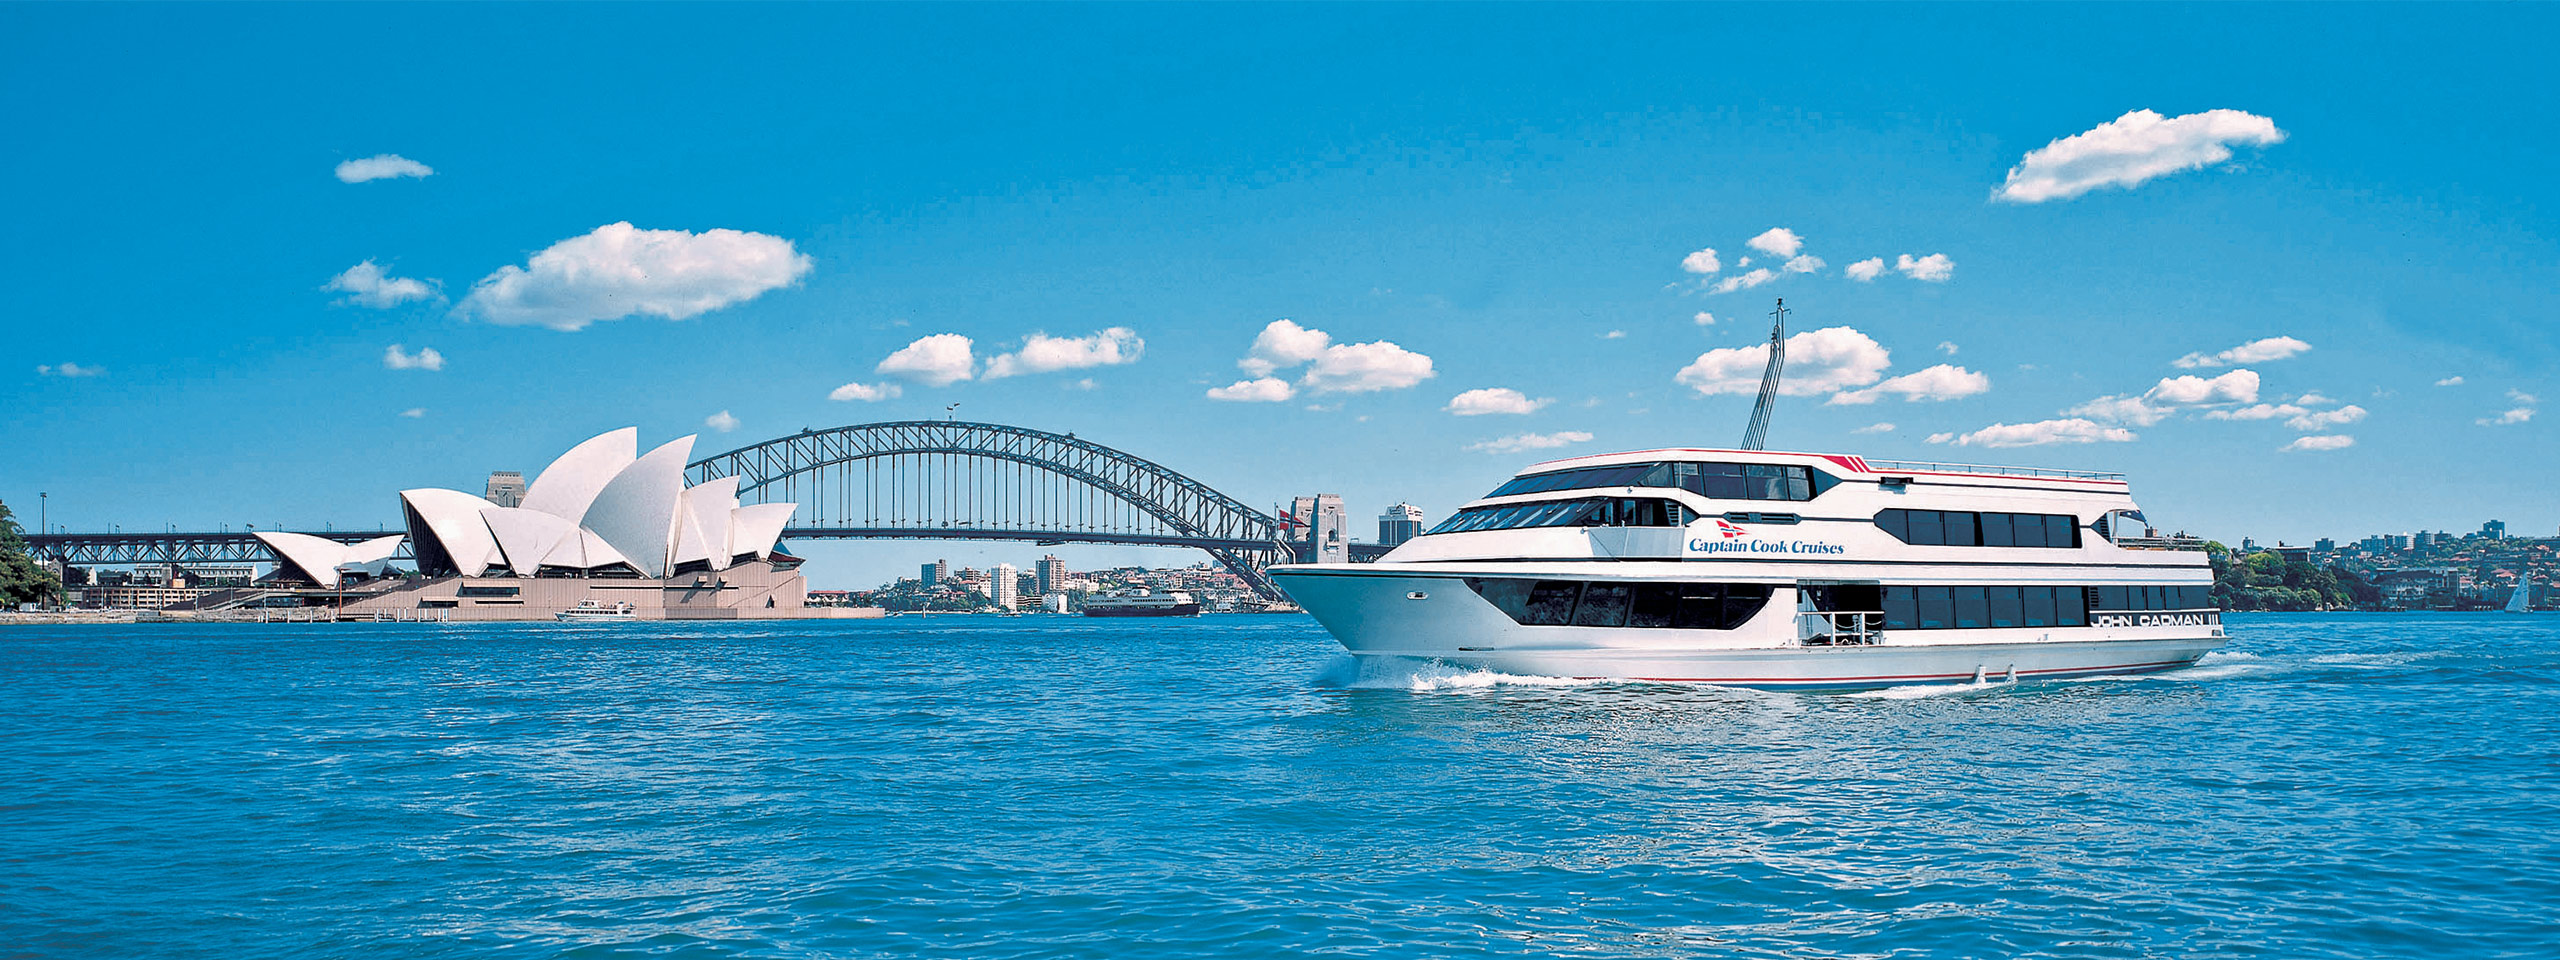 Sydney Captain Cook Cruise